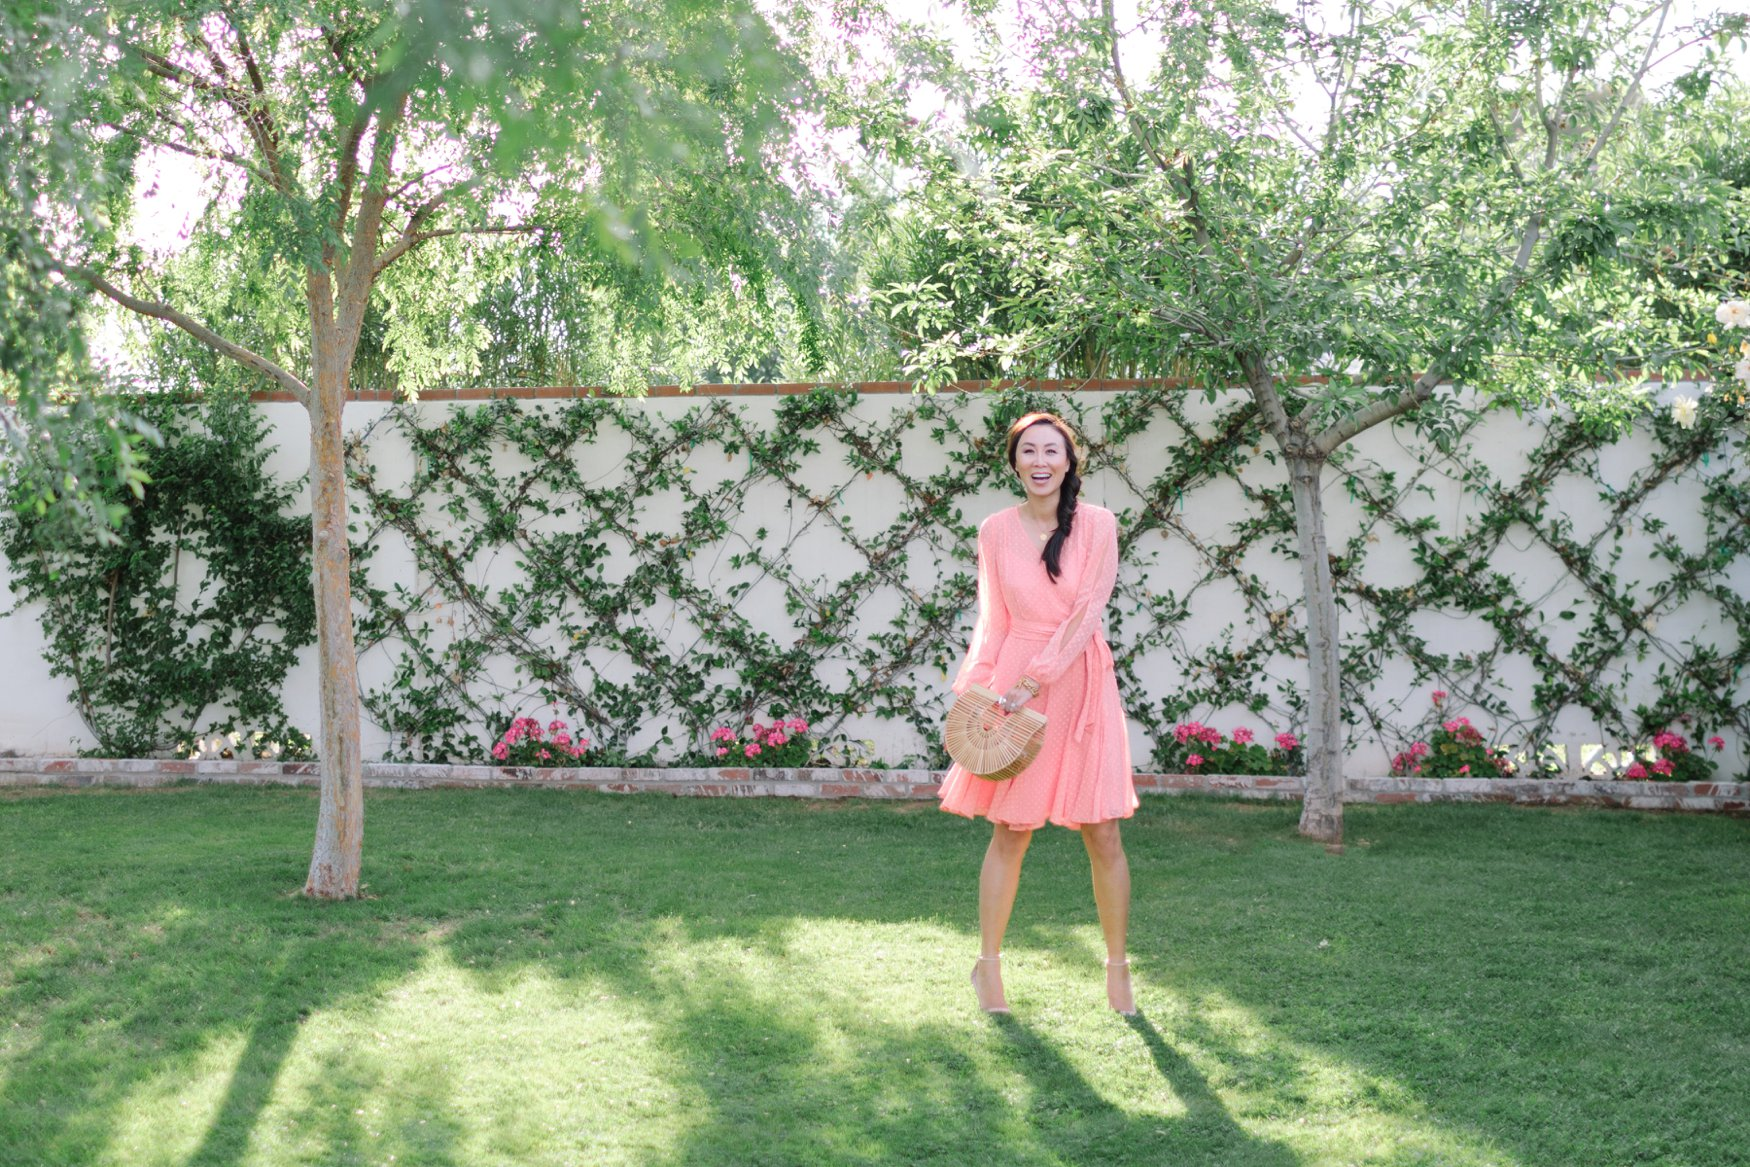 tahari asl dress easter dress Diana Elizabeth against jasmine vine espalier wall birdcage looking handbag by cult gaia